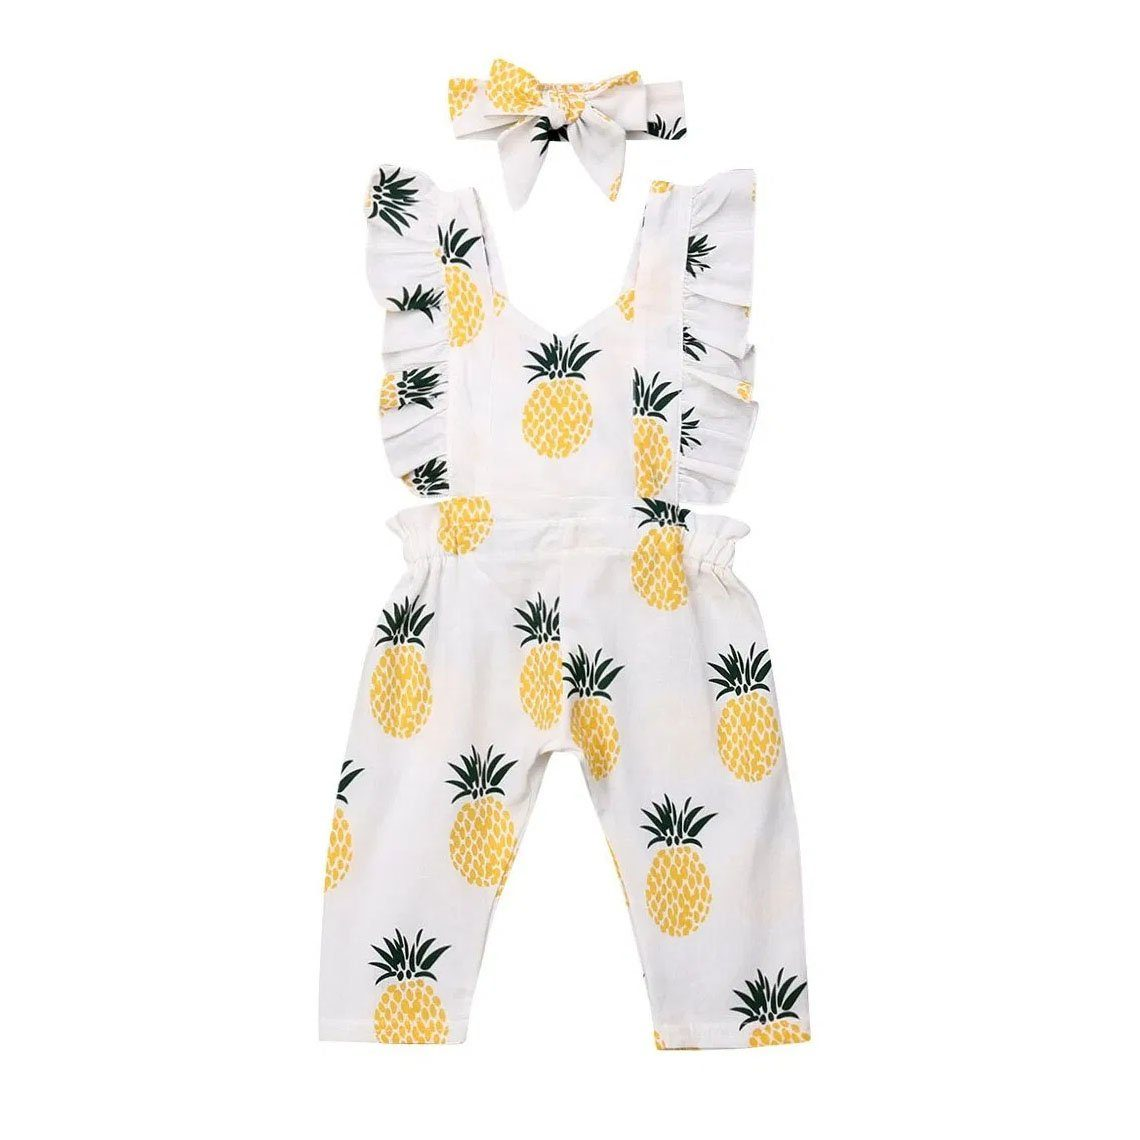 Pineapple Ruffled Jumpsuit - The Trendy Toddlers